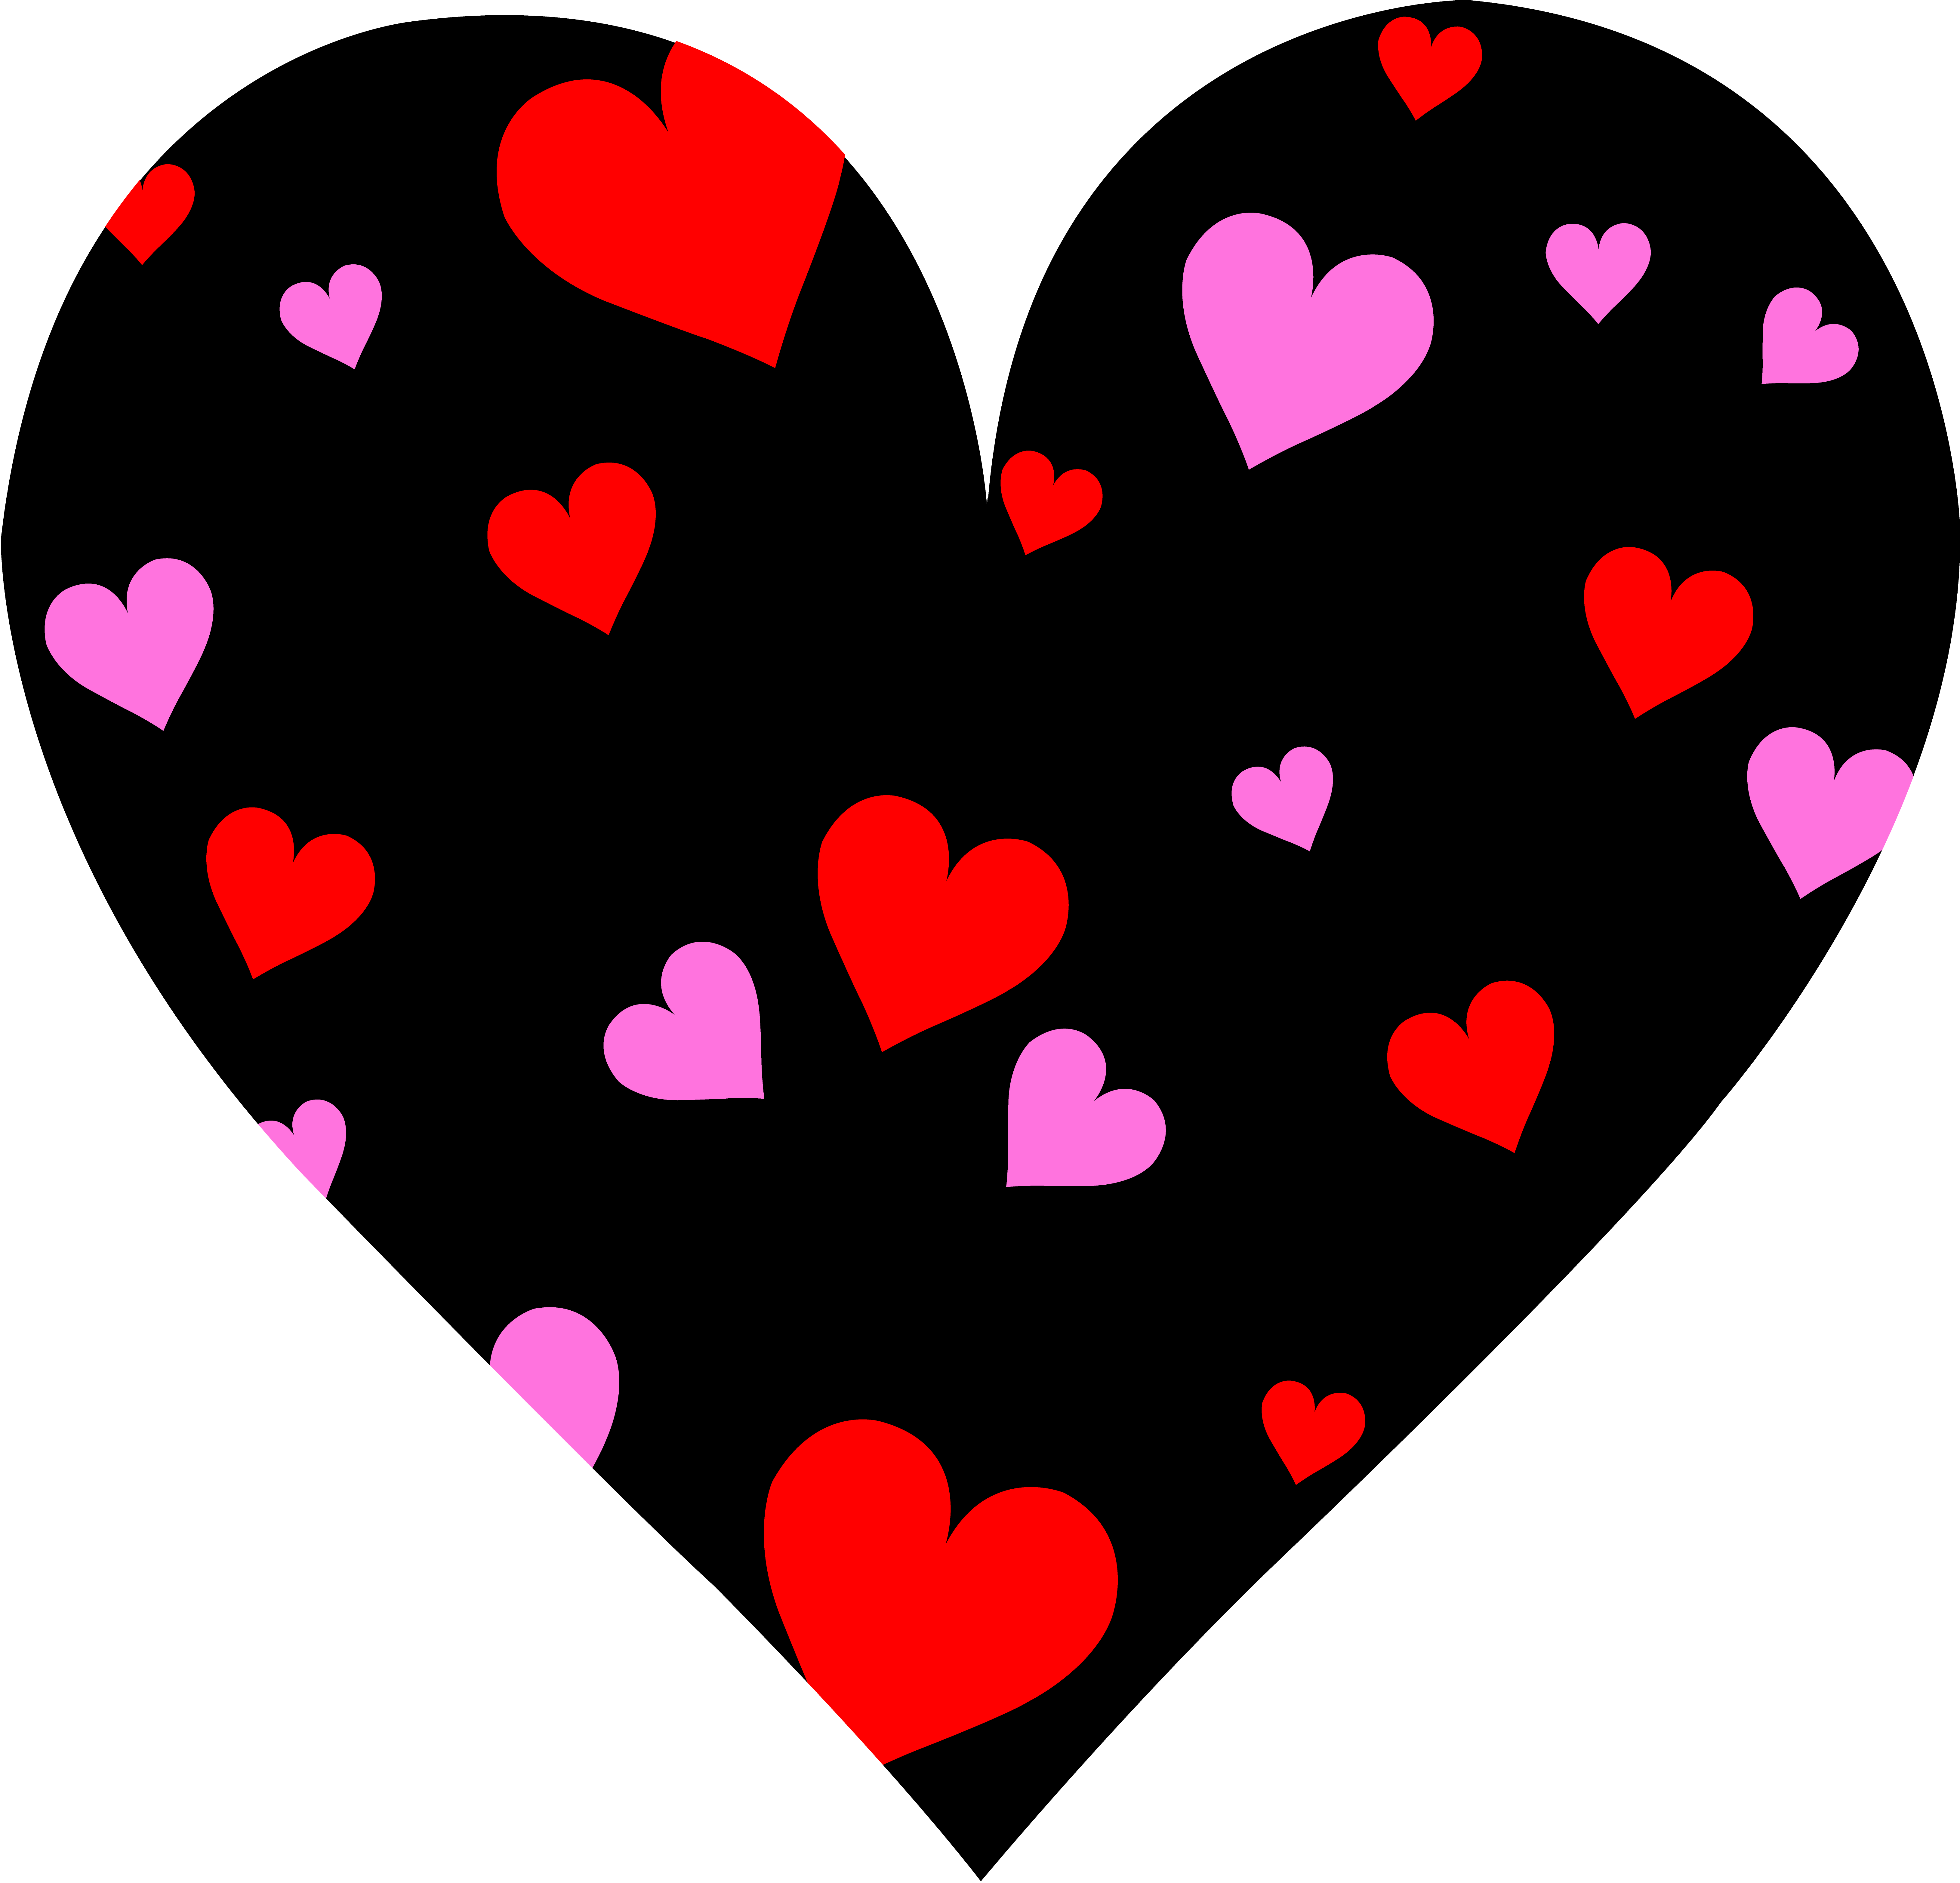 Cute valentine hearts clipart jpg black and white My Most Memorable Valentine's Day | My Life, Such As It is jpg black and white